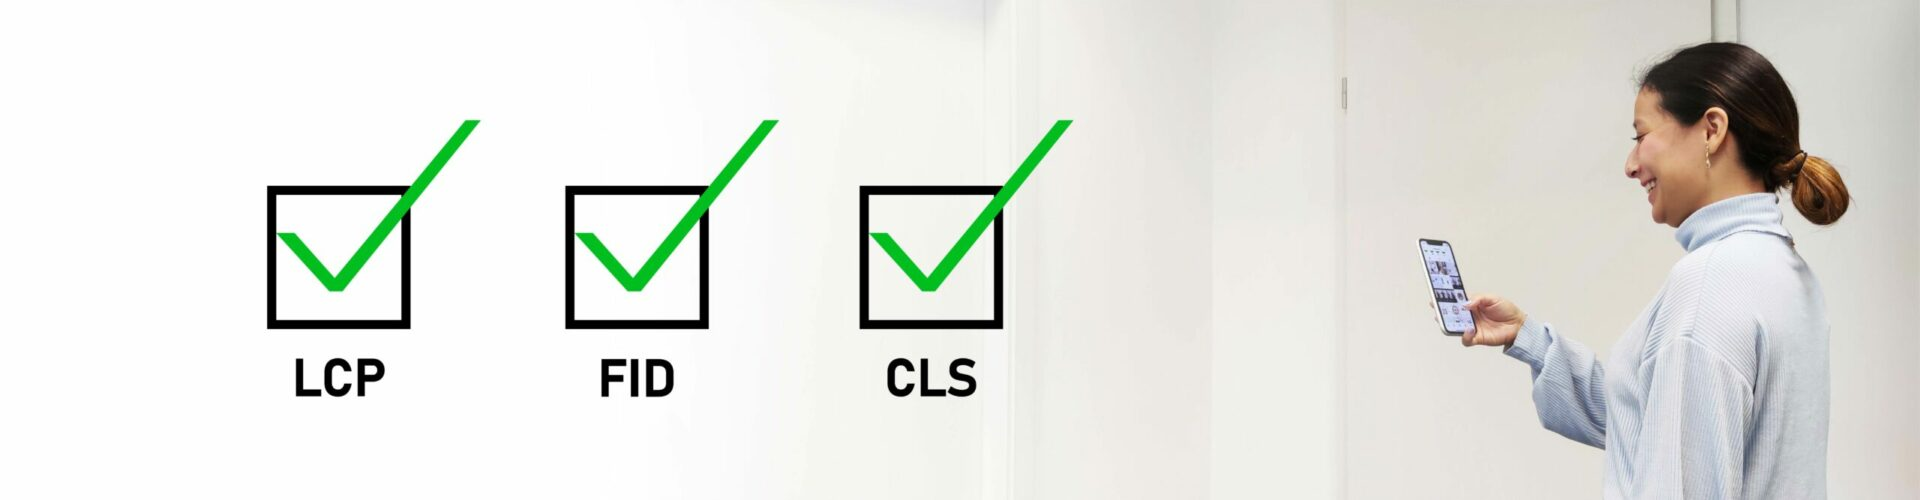 LCP FID CLS verbessern User Experience